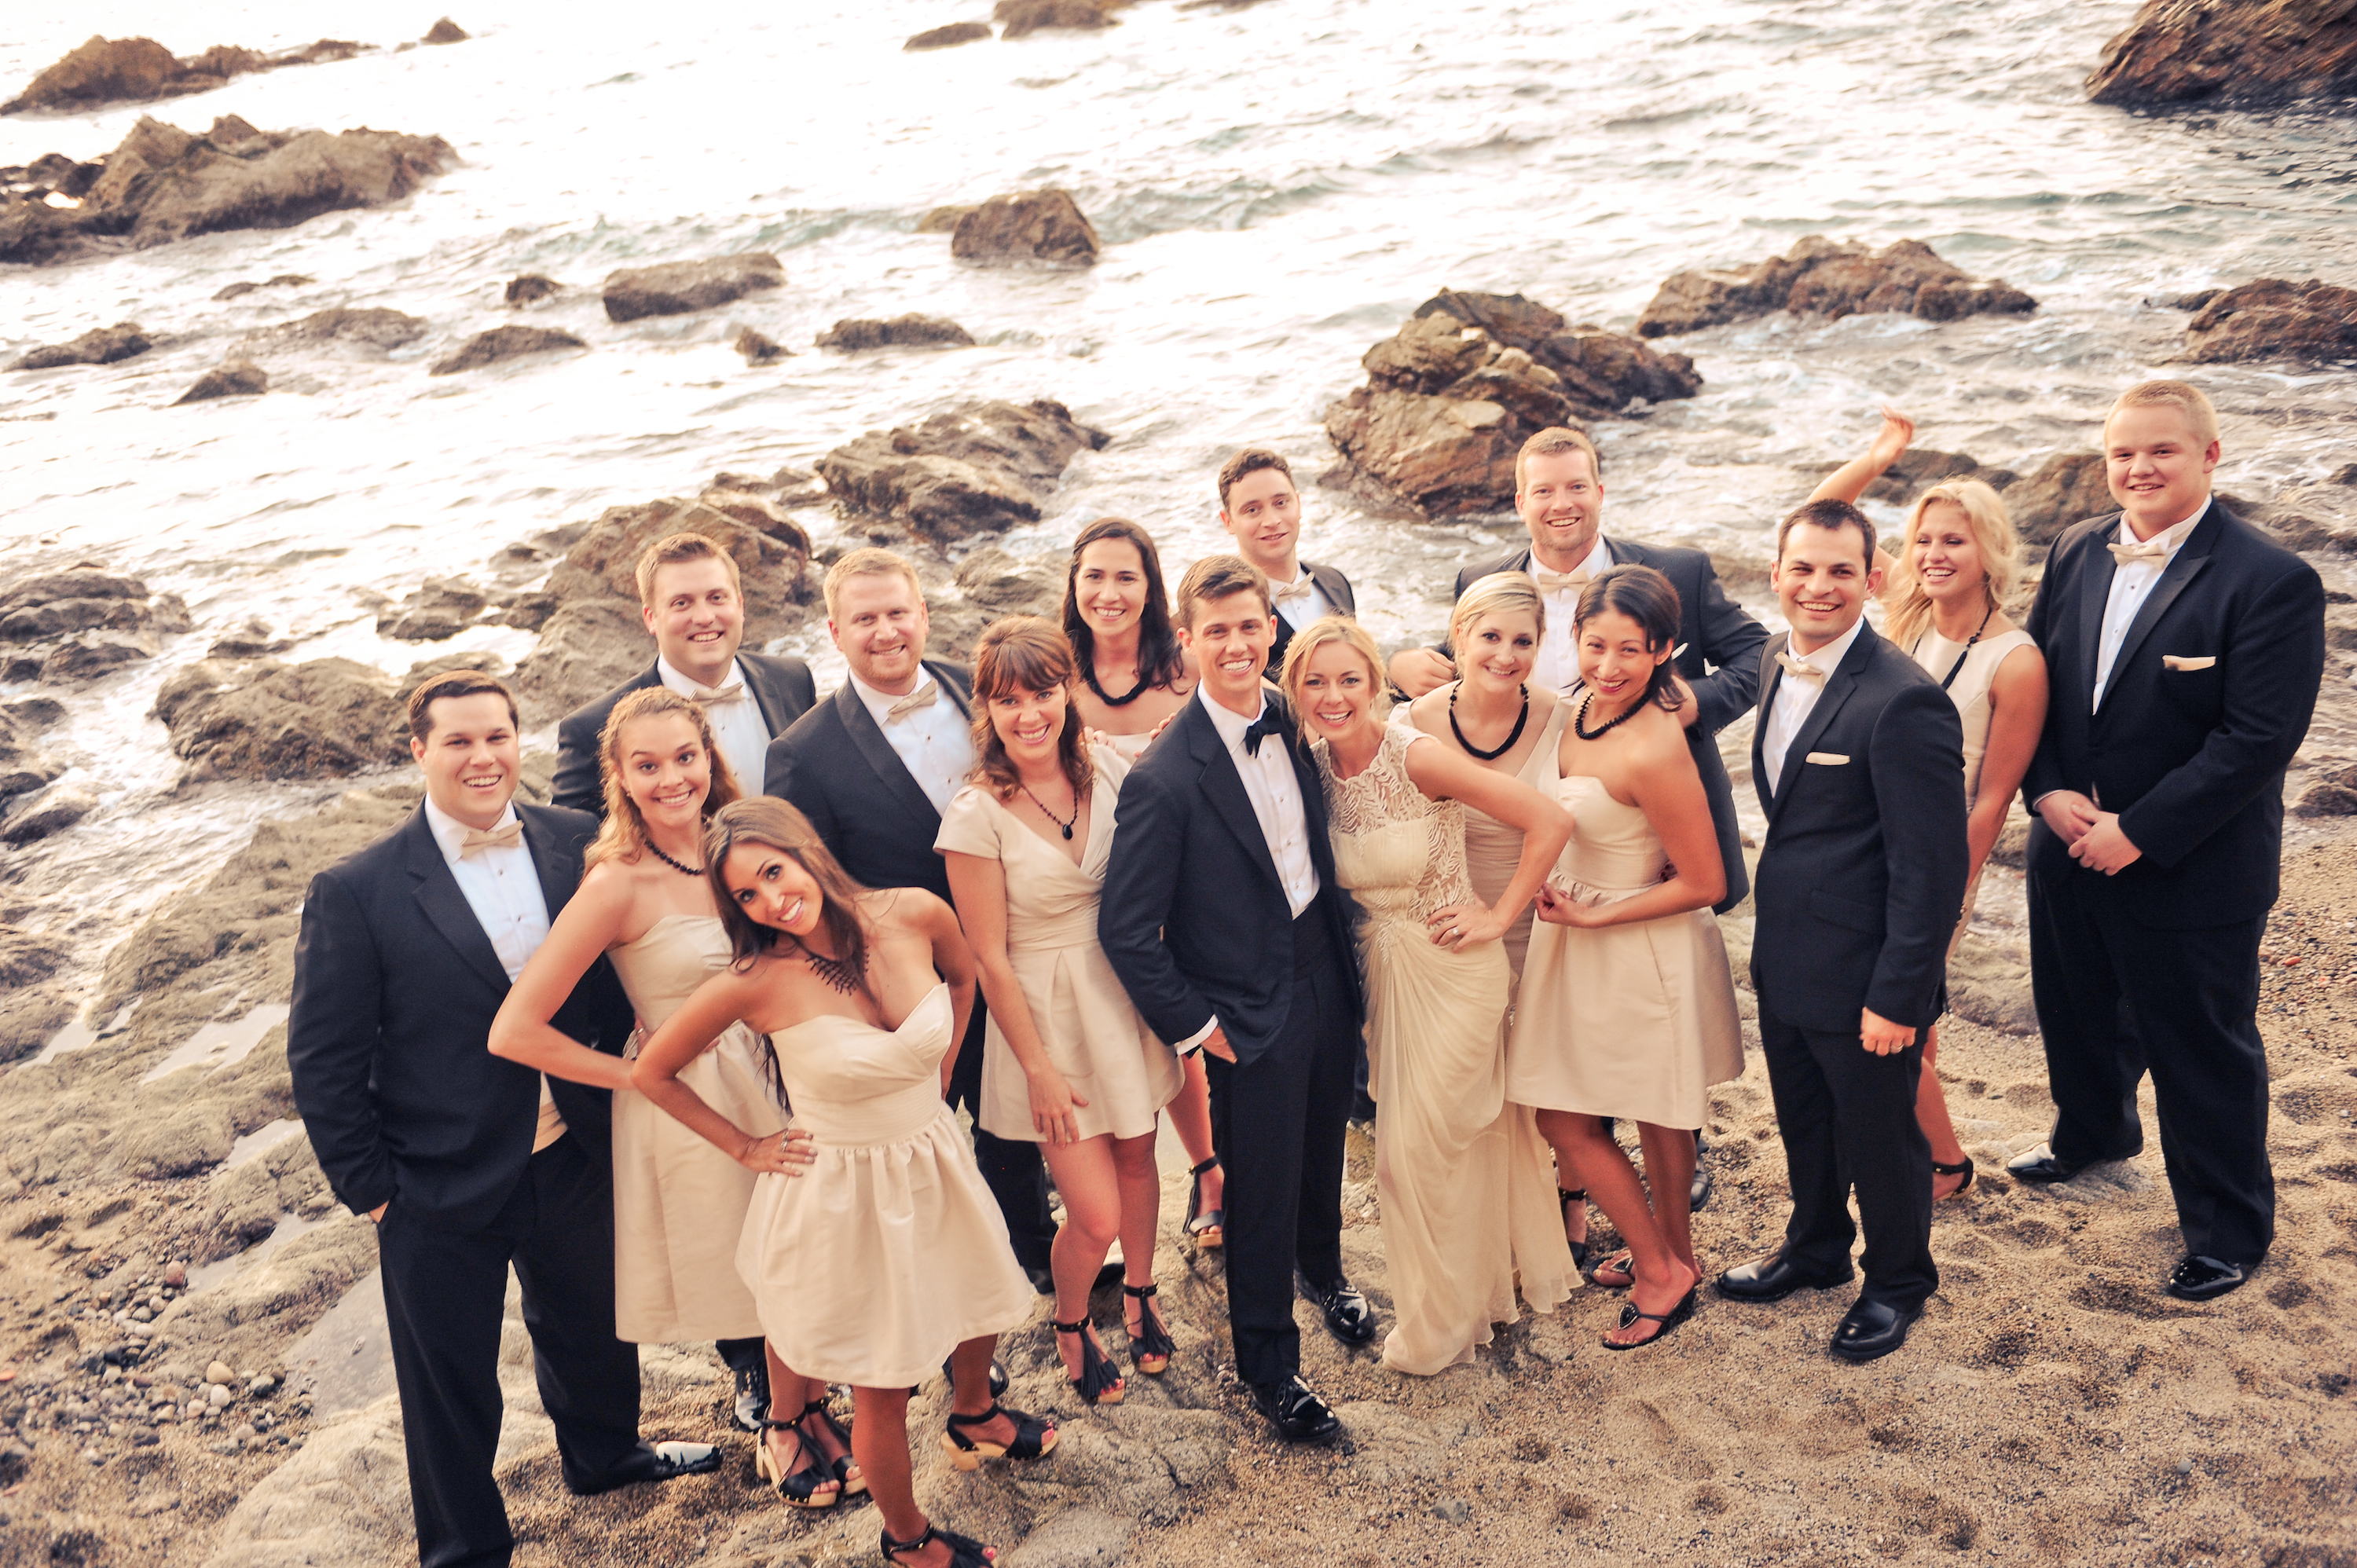 Wedding Style Advice On Outfitting The Groomsmen